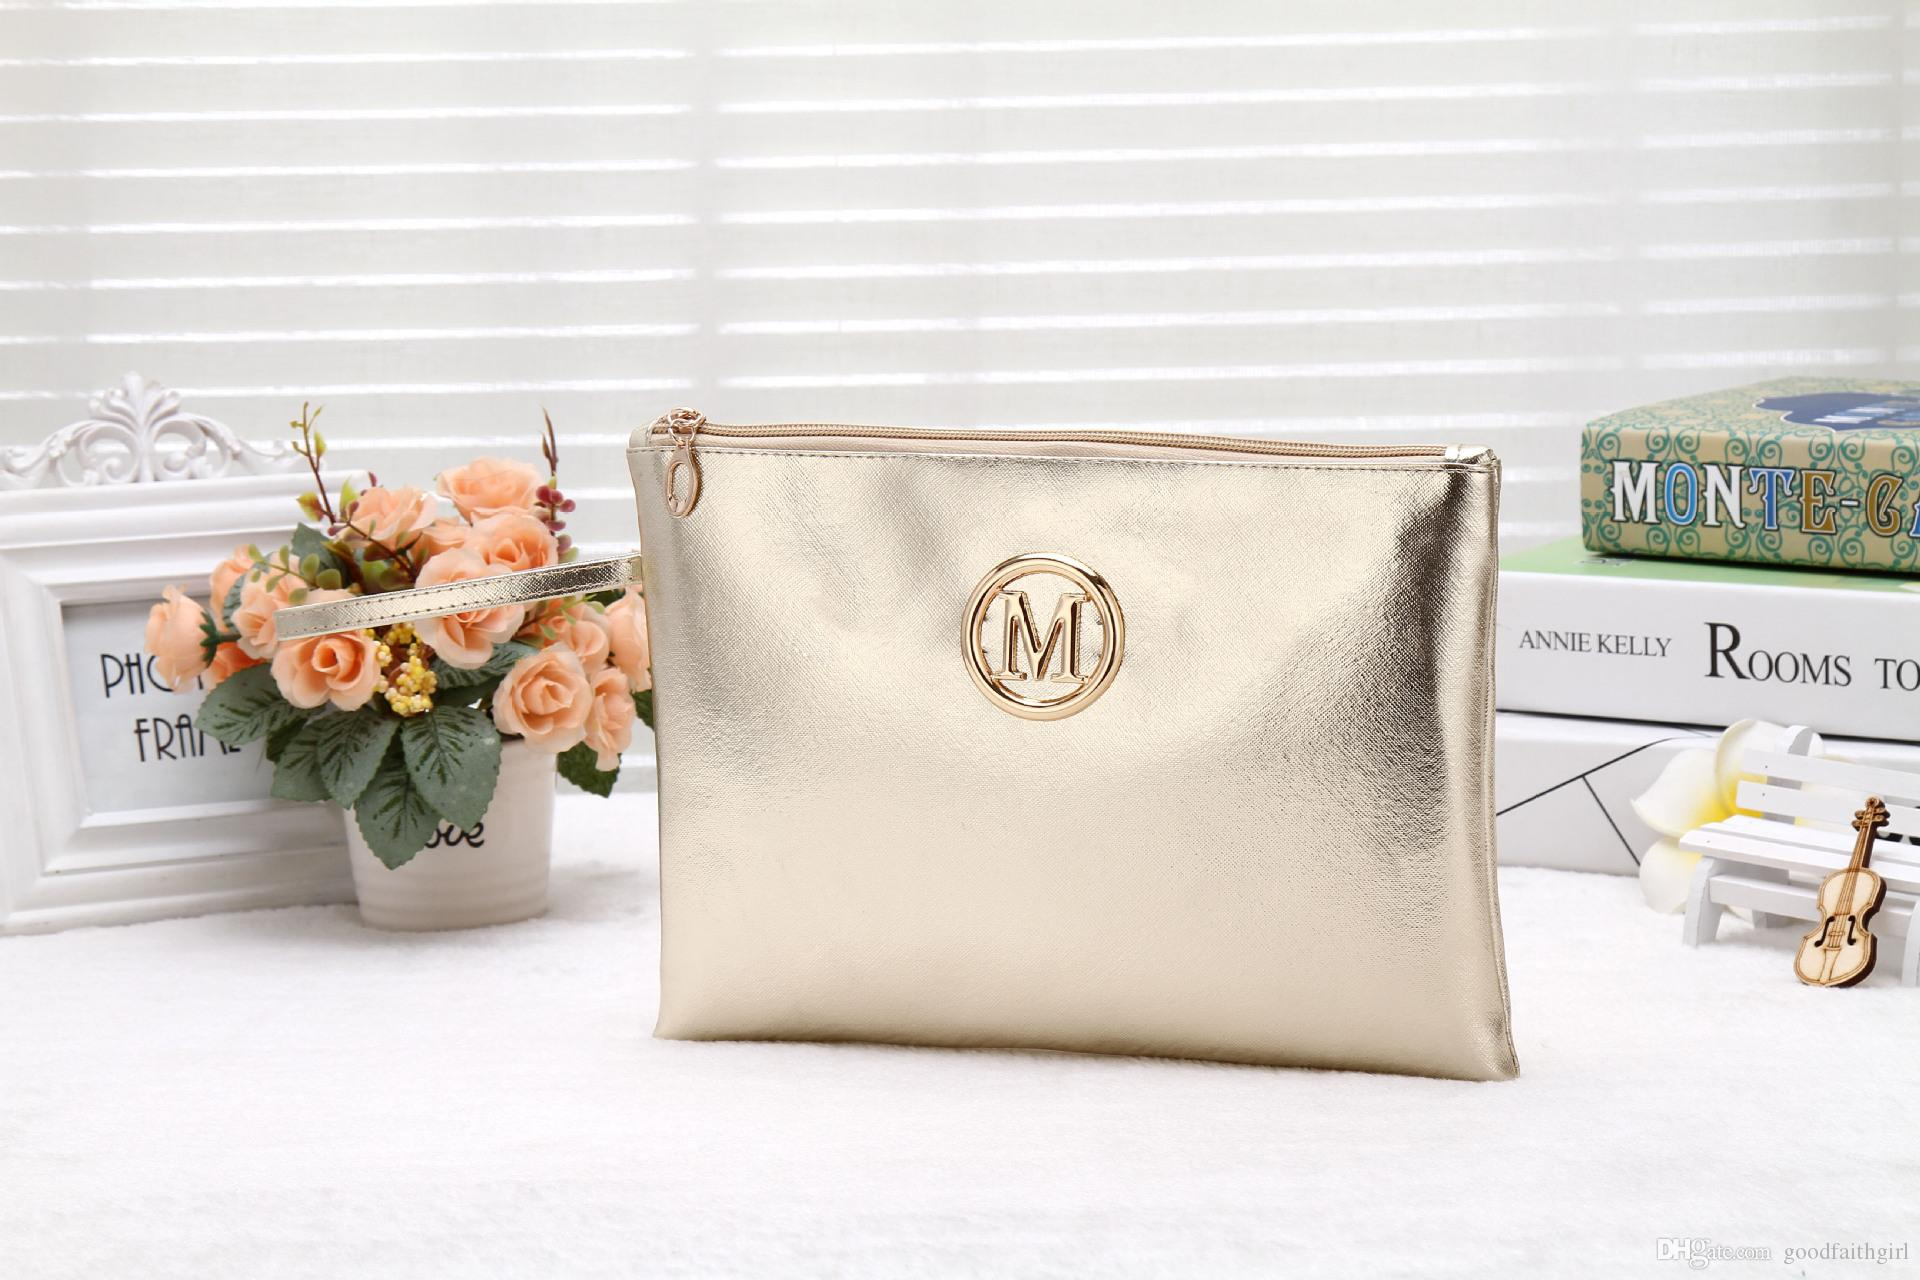 2017 New Women Evening Handbag Lady Envelope Clutch Tote Bag Purse wallet cosmetic bag by goodfiathgirl